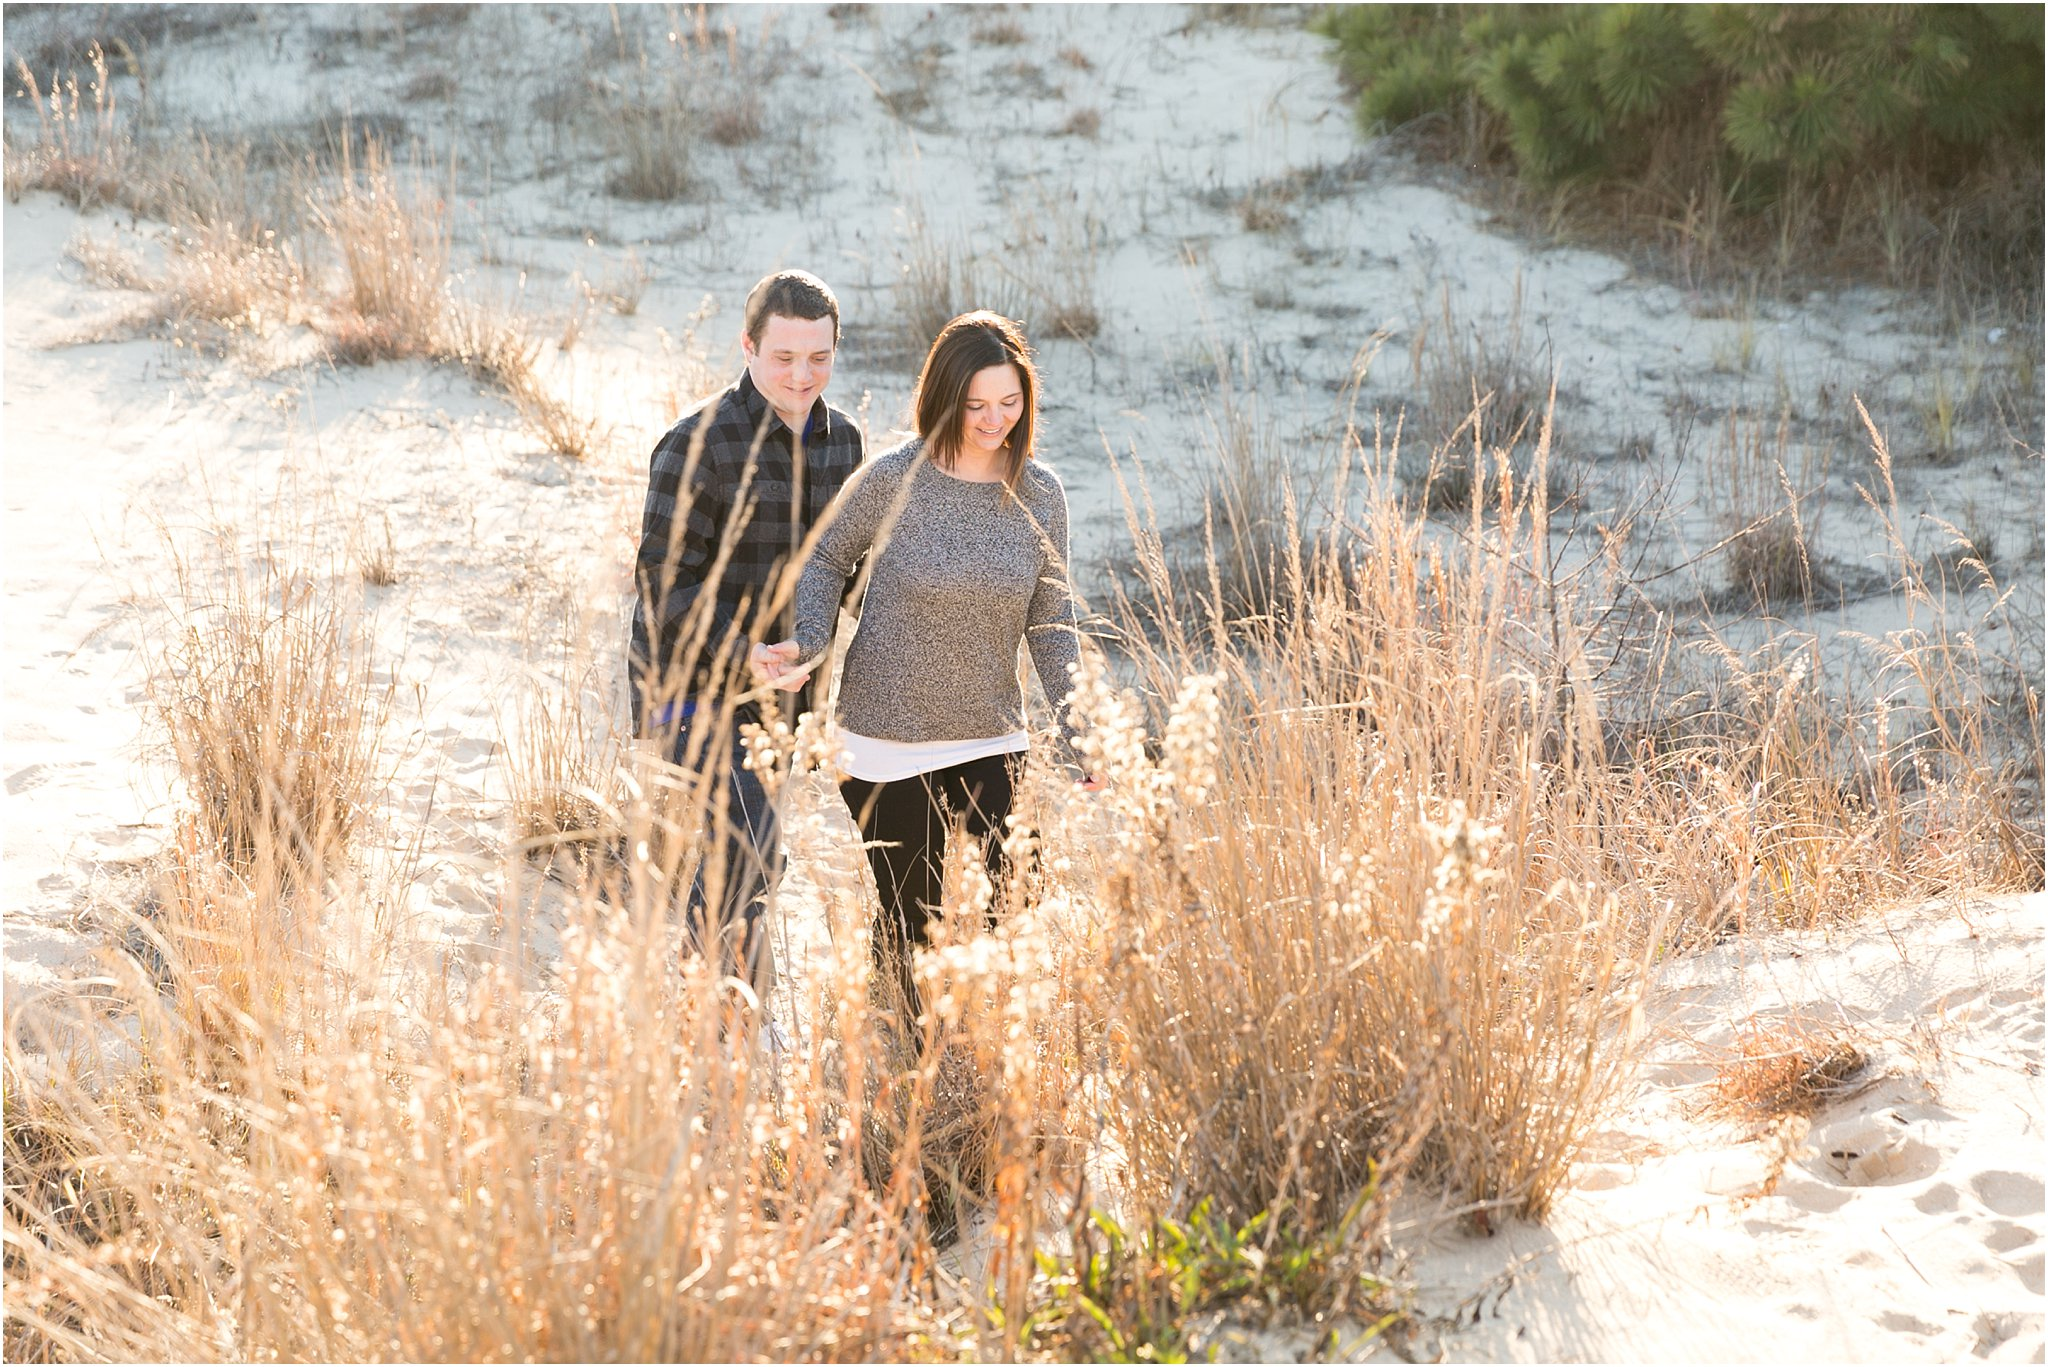 jessica_ryan_photography_winter_engagements_virginia_beach_oceanfront_virginia_0755